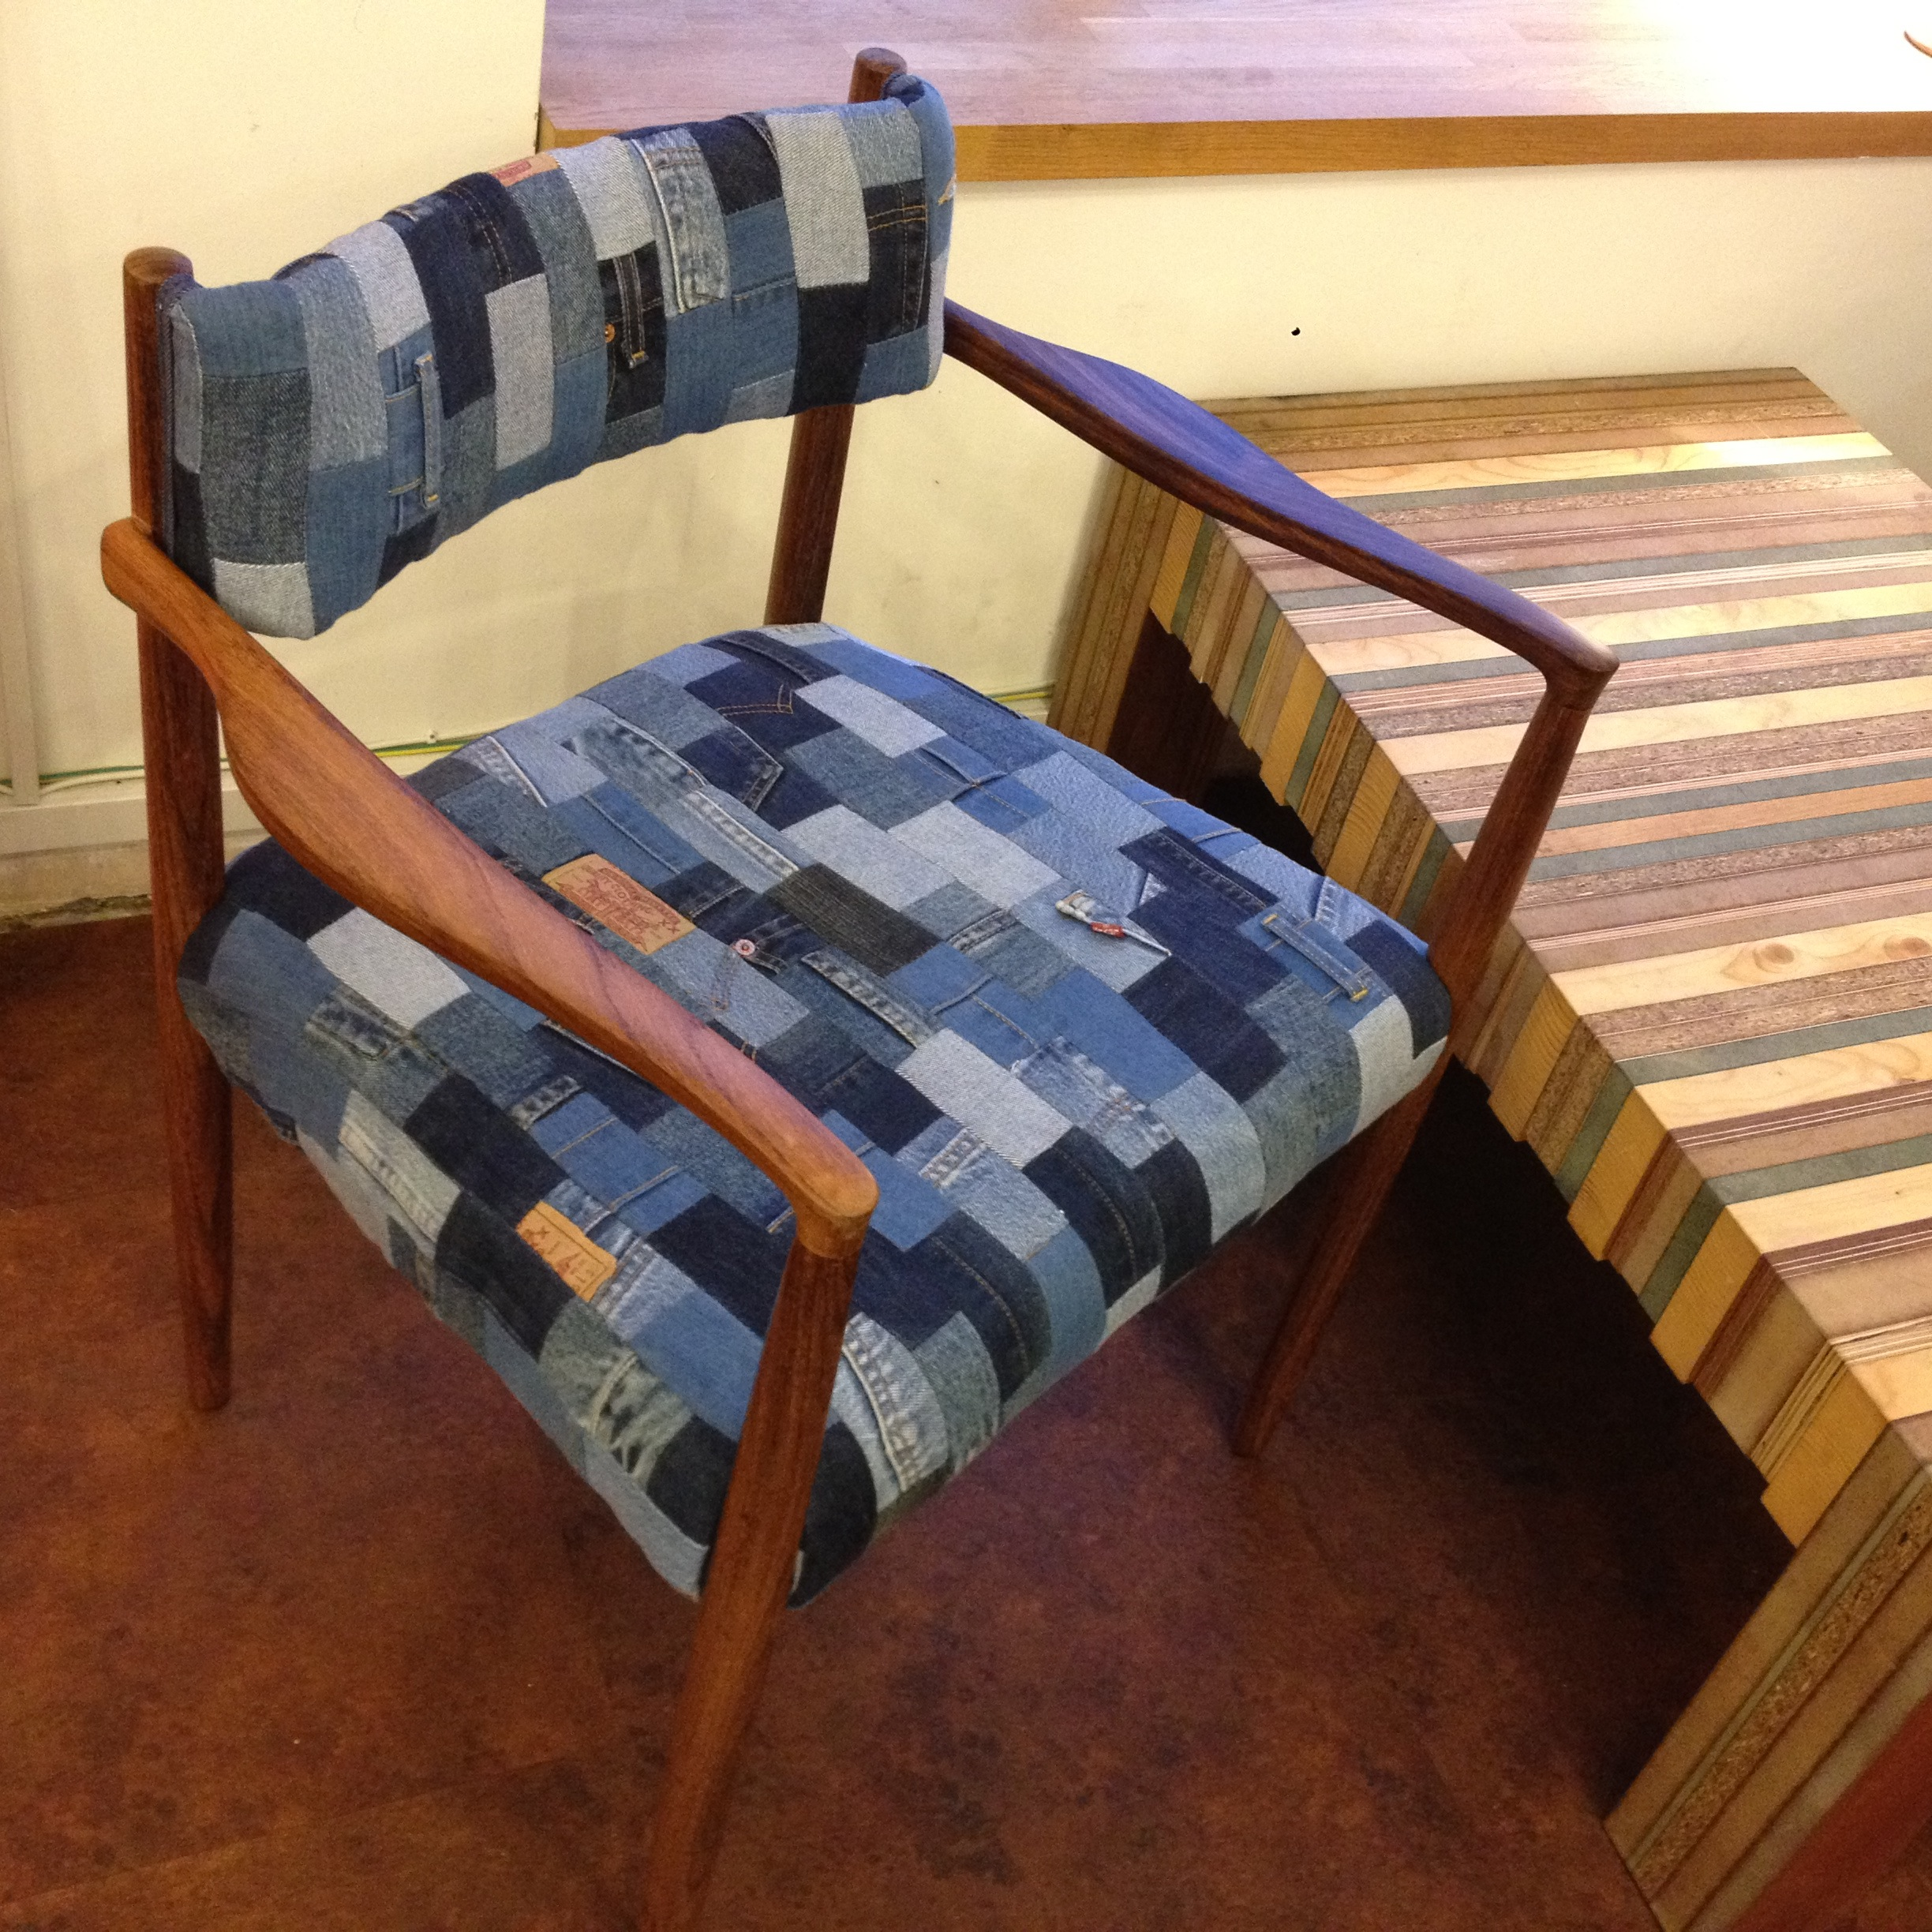 This Chair is upcycled in London using a well built, quality chair using old jeans. The chair is ready for another lifetime. Made by Emma Phelps.